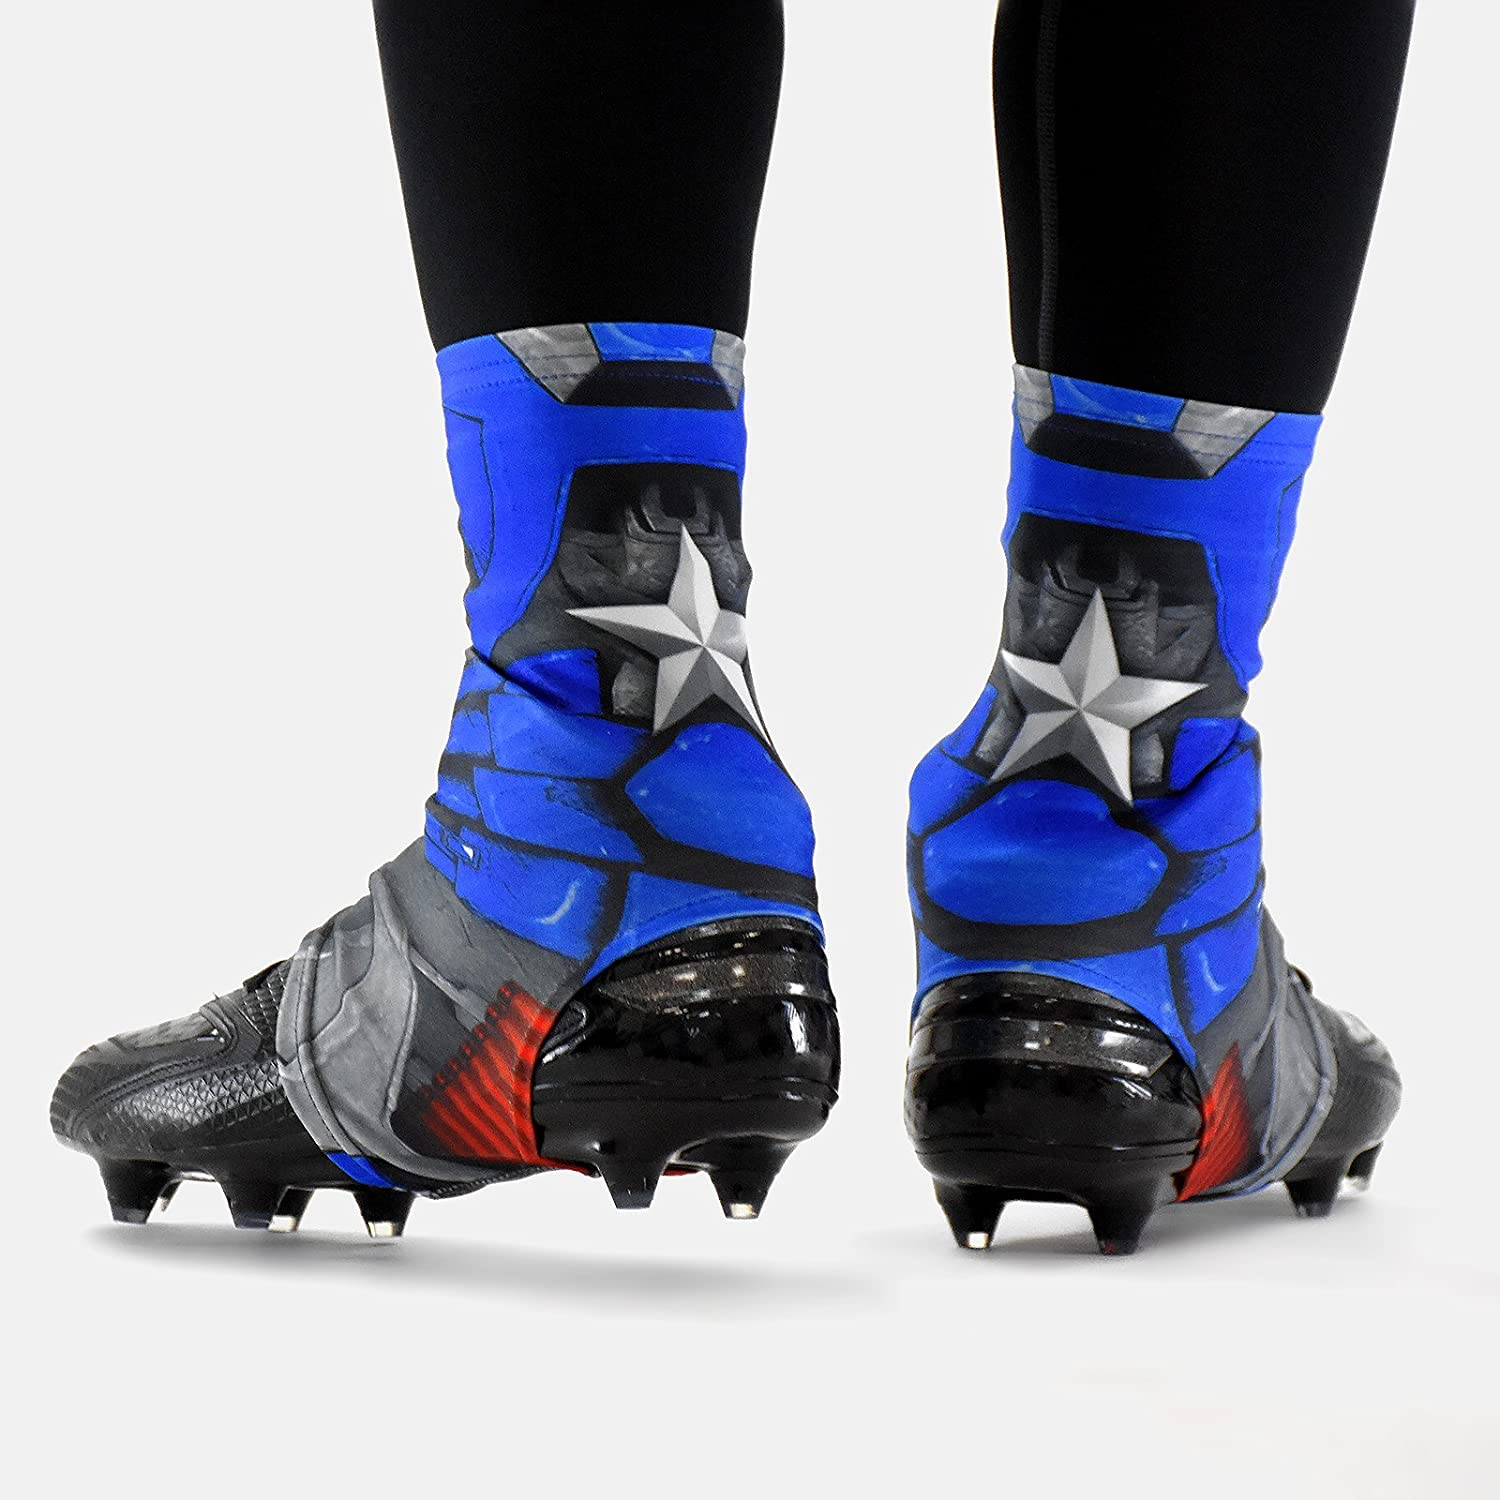 Biomerica Spats/Cleat Covers